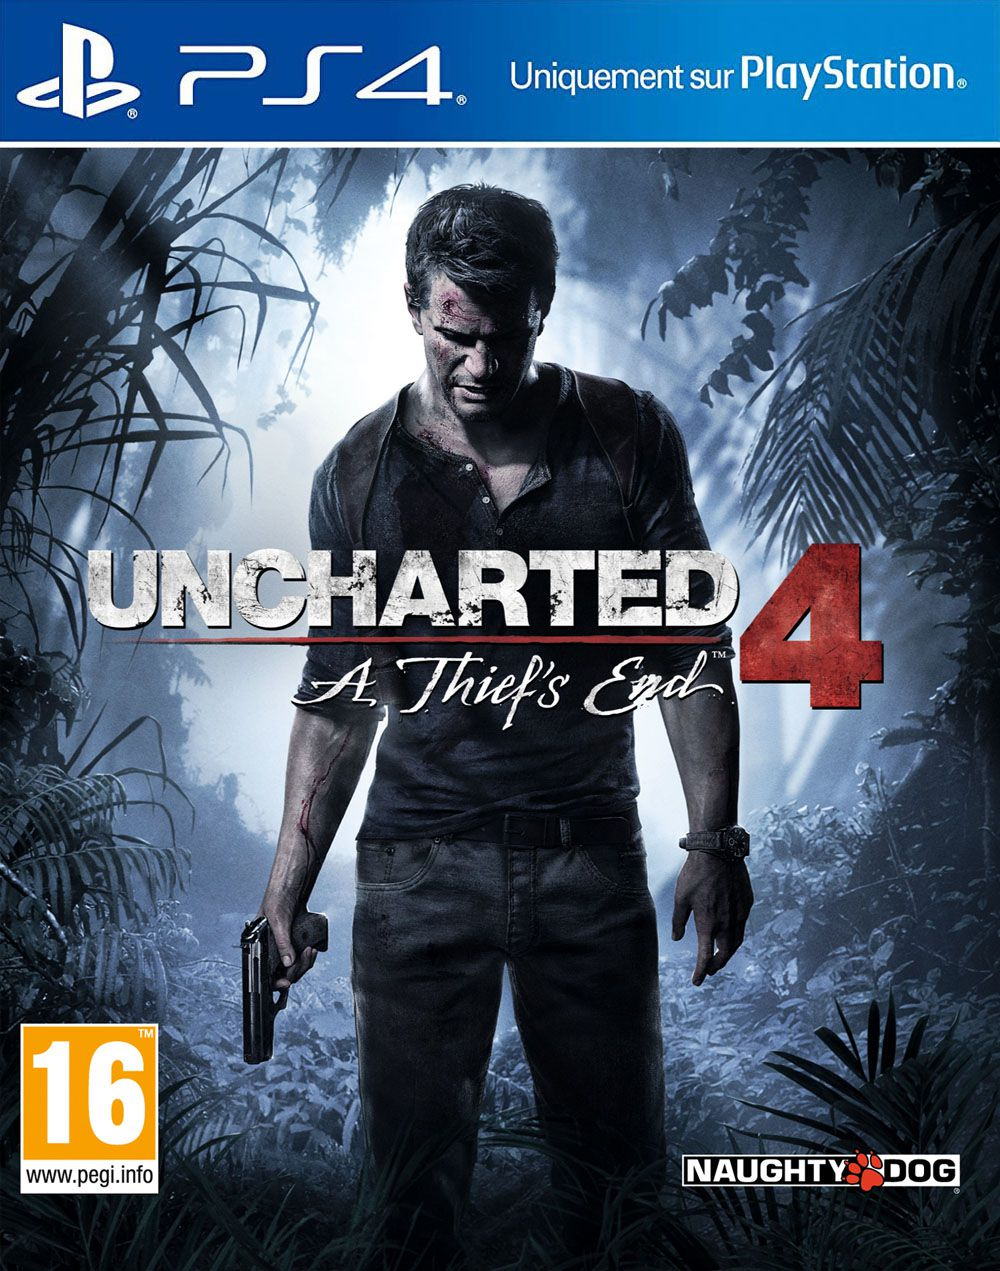 Uncharted 4 : A Thief's End (2016)  - Jeu vidéo streaming VF gratuit complet